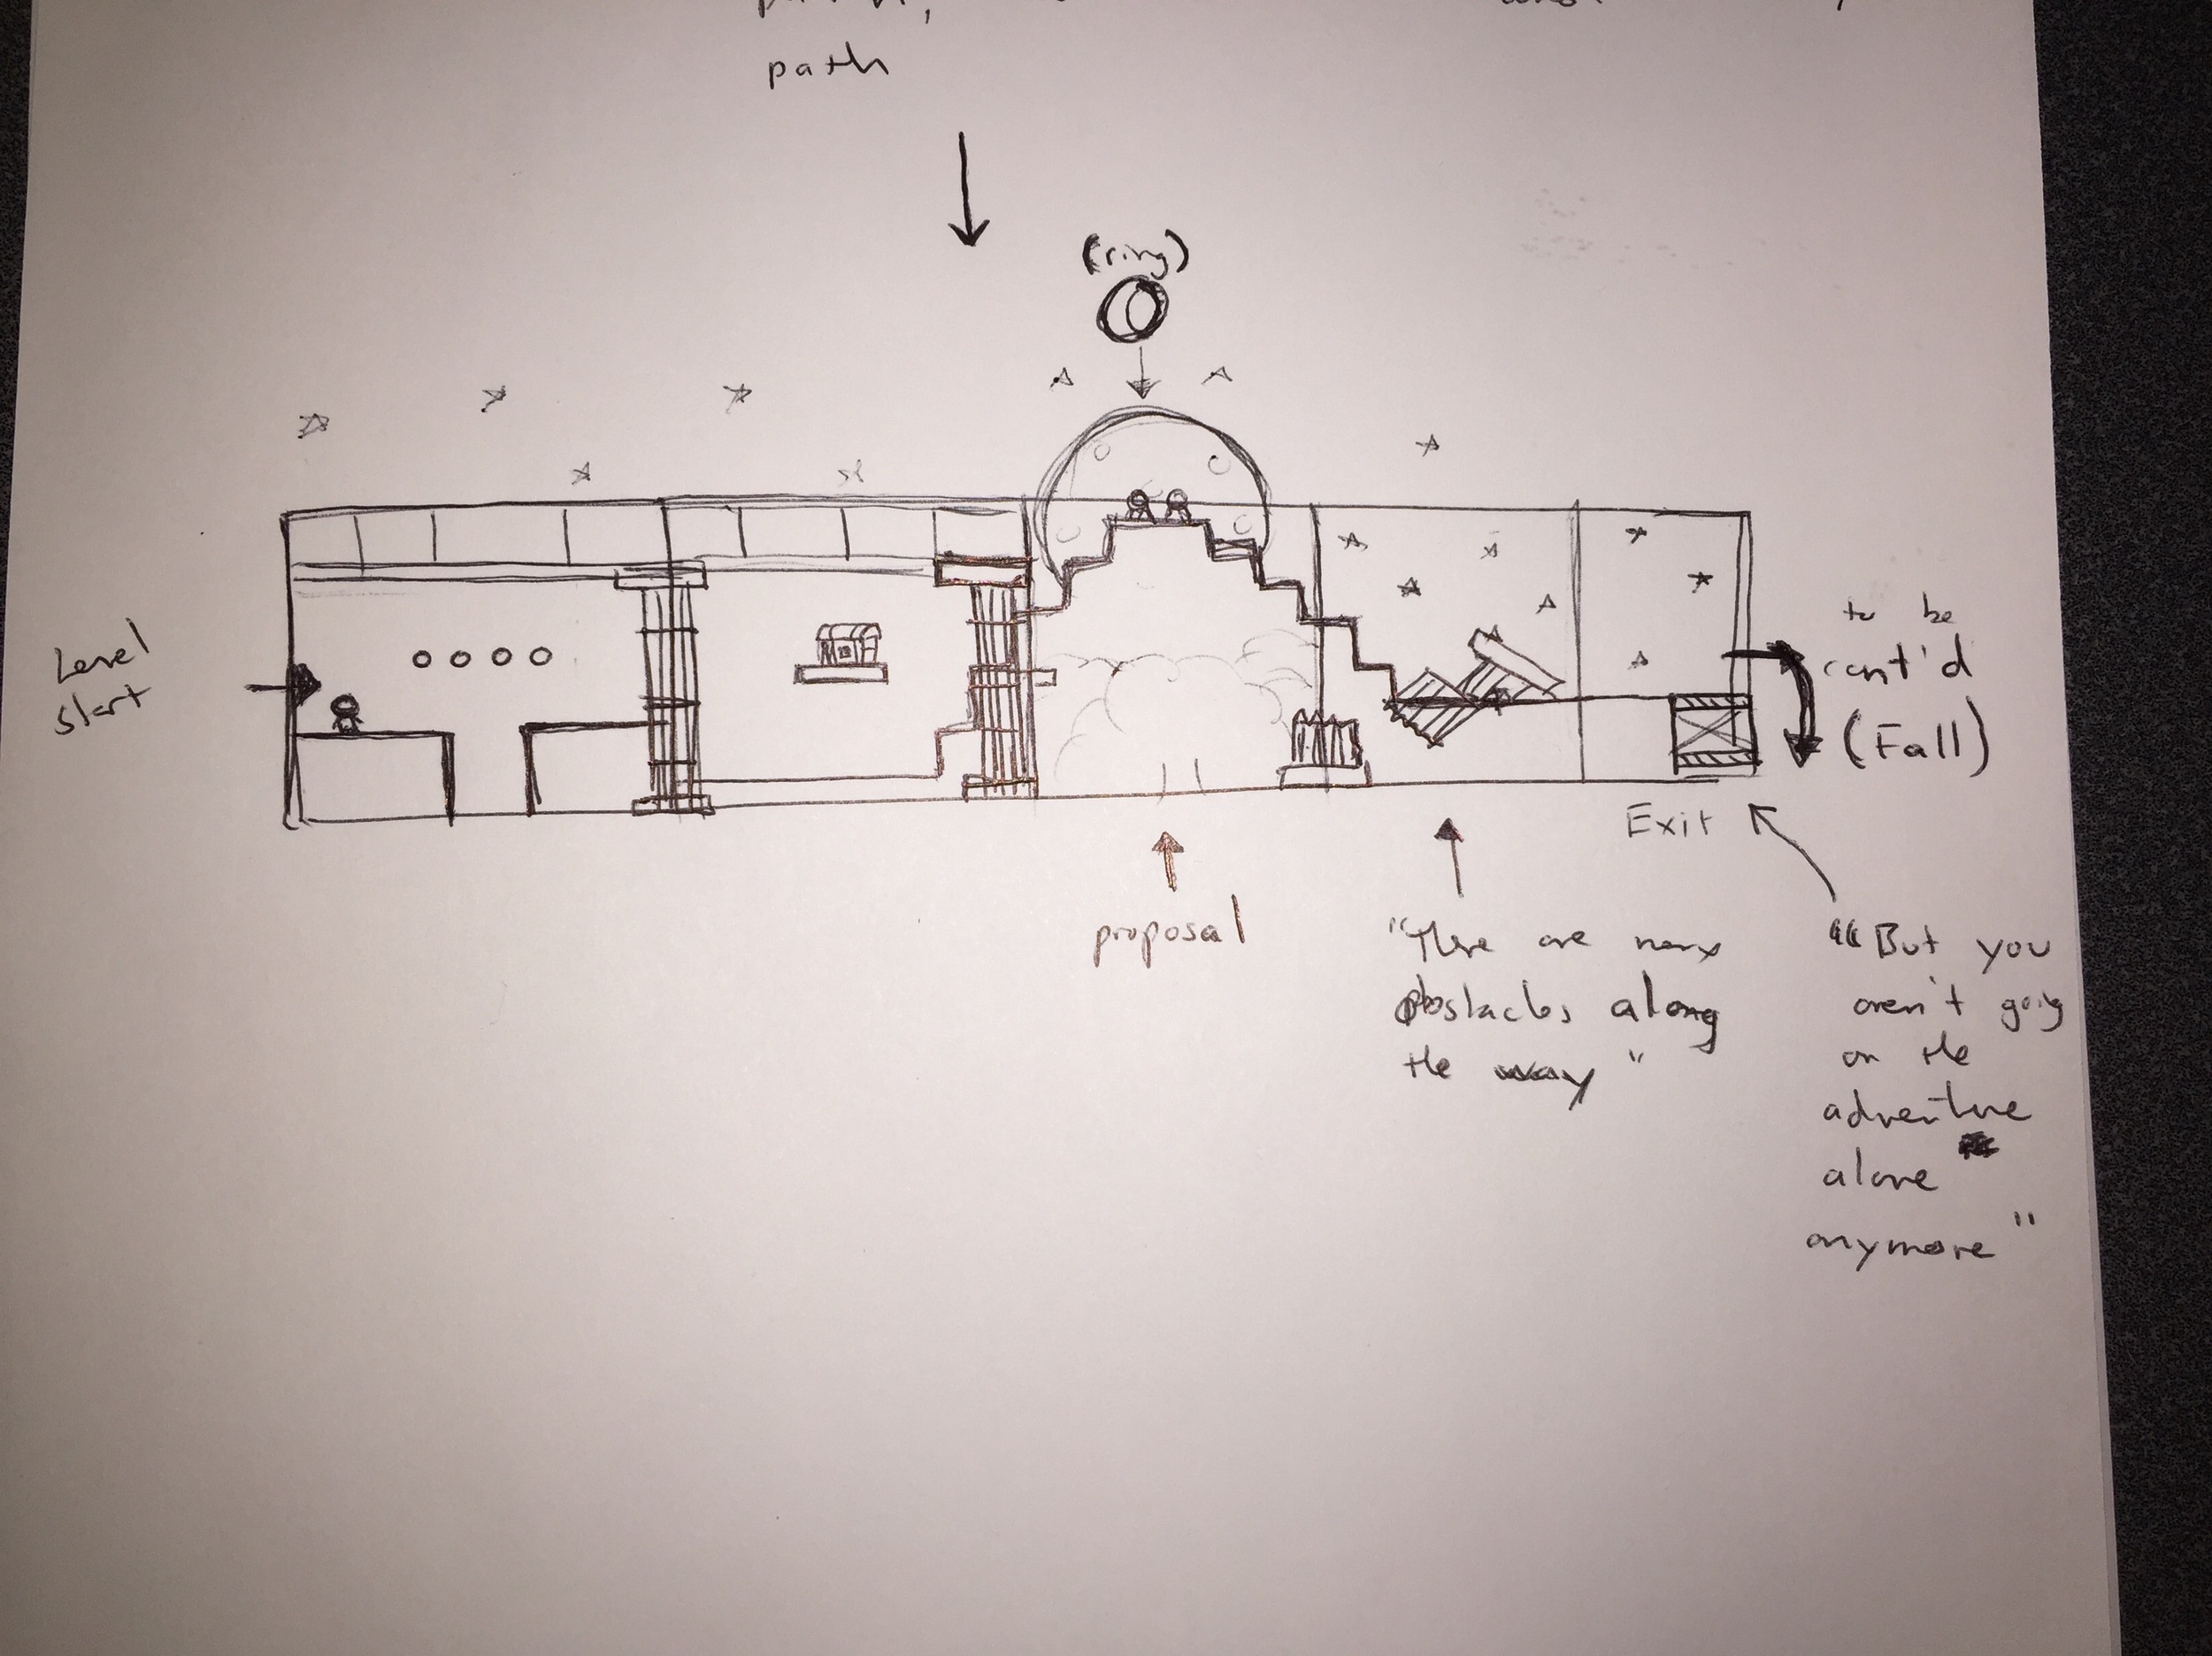 After we had a script, we drew out this 5 room level as a roadmap for what should be done next.